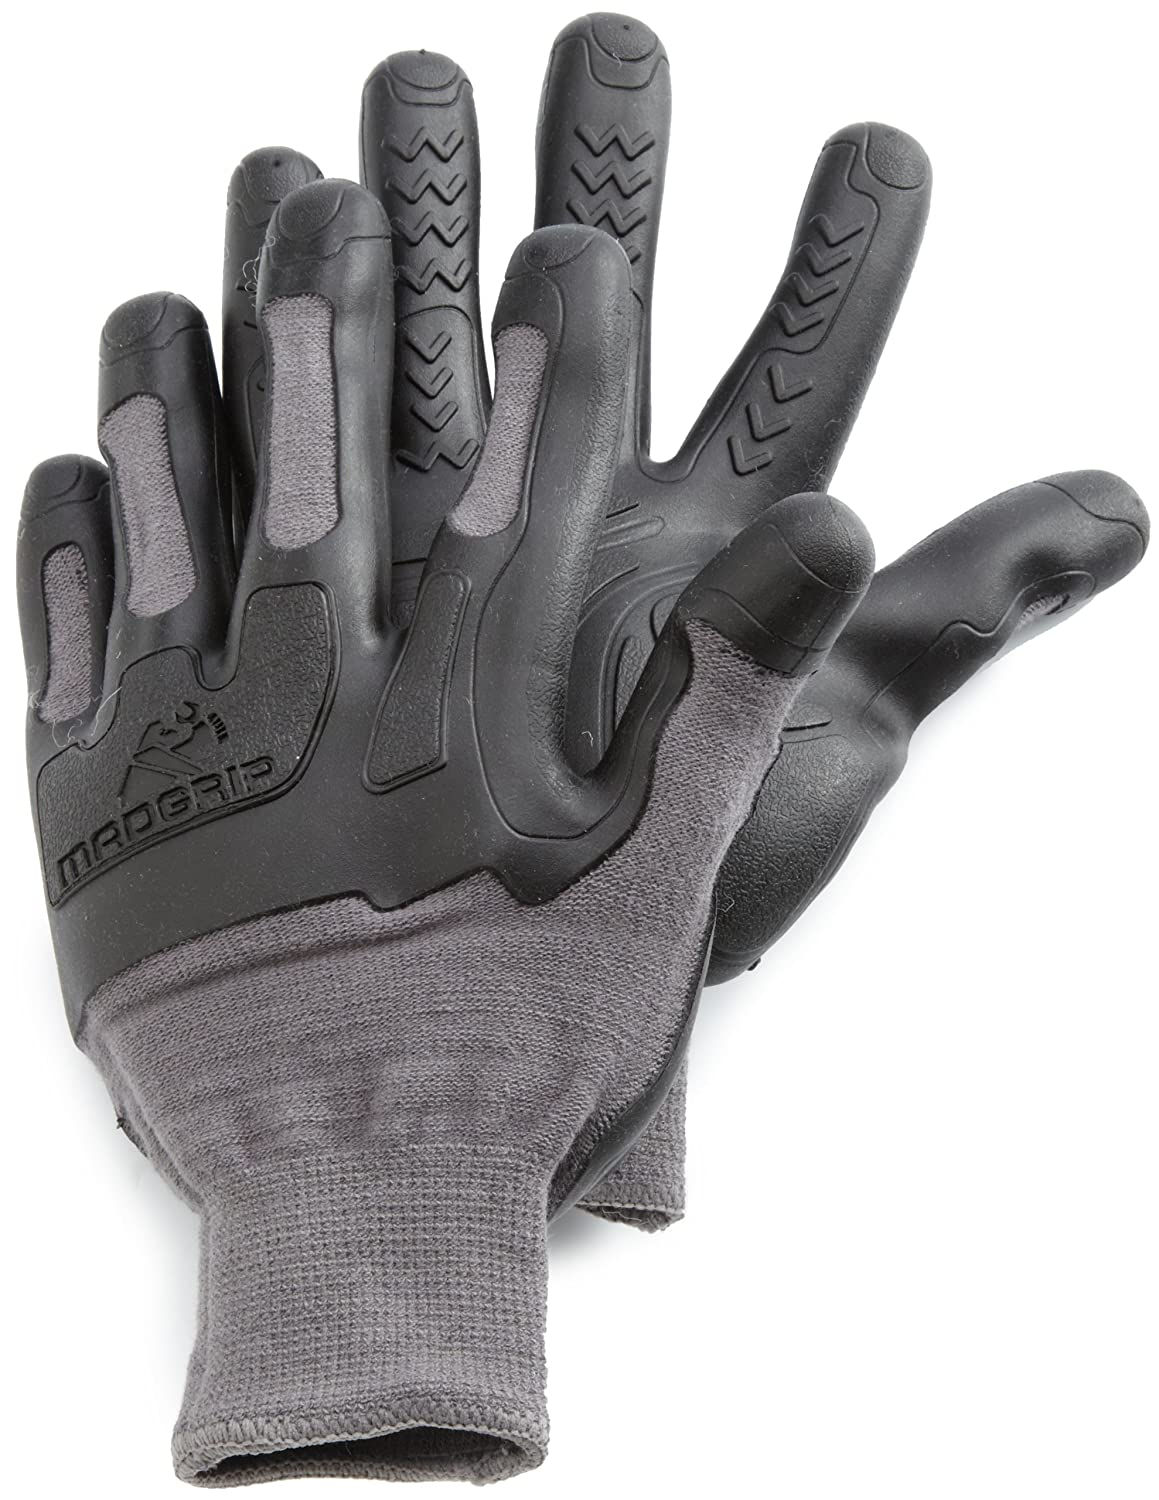 Black gardening gloves - Black Gardening Gloves 14